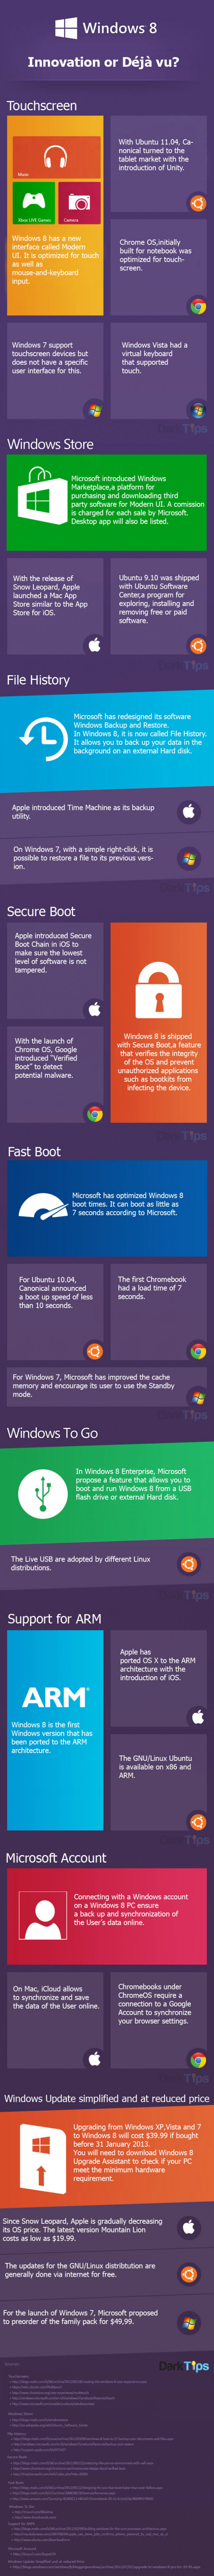 Windows 8: Innovation or Déjà vu Infographic